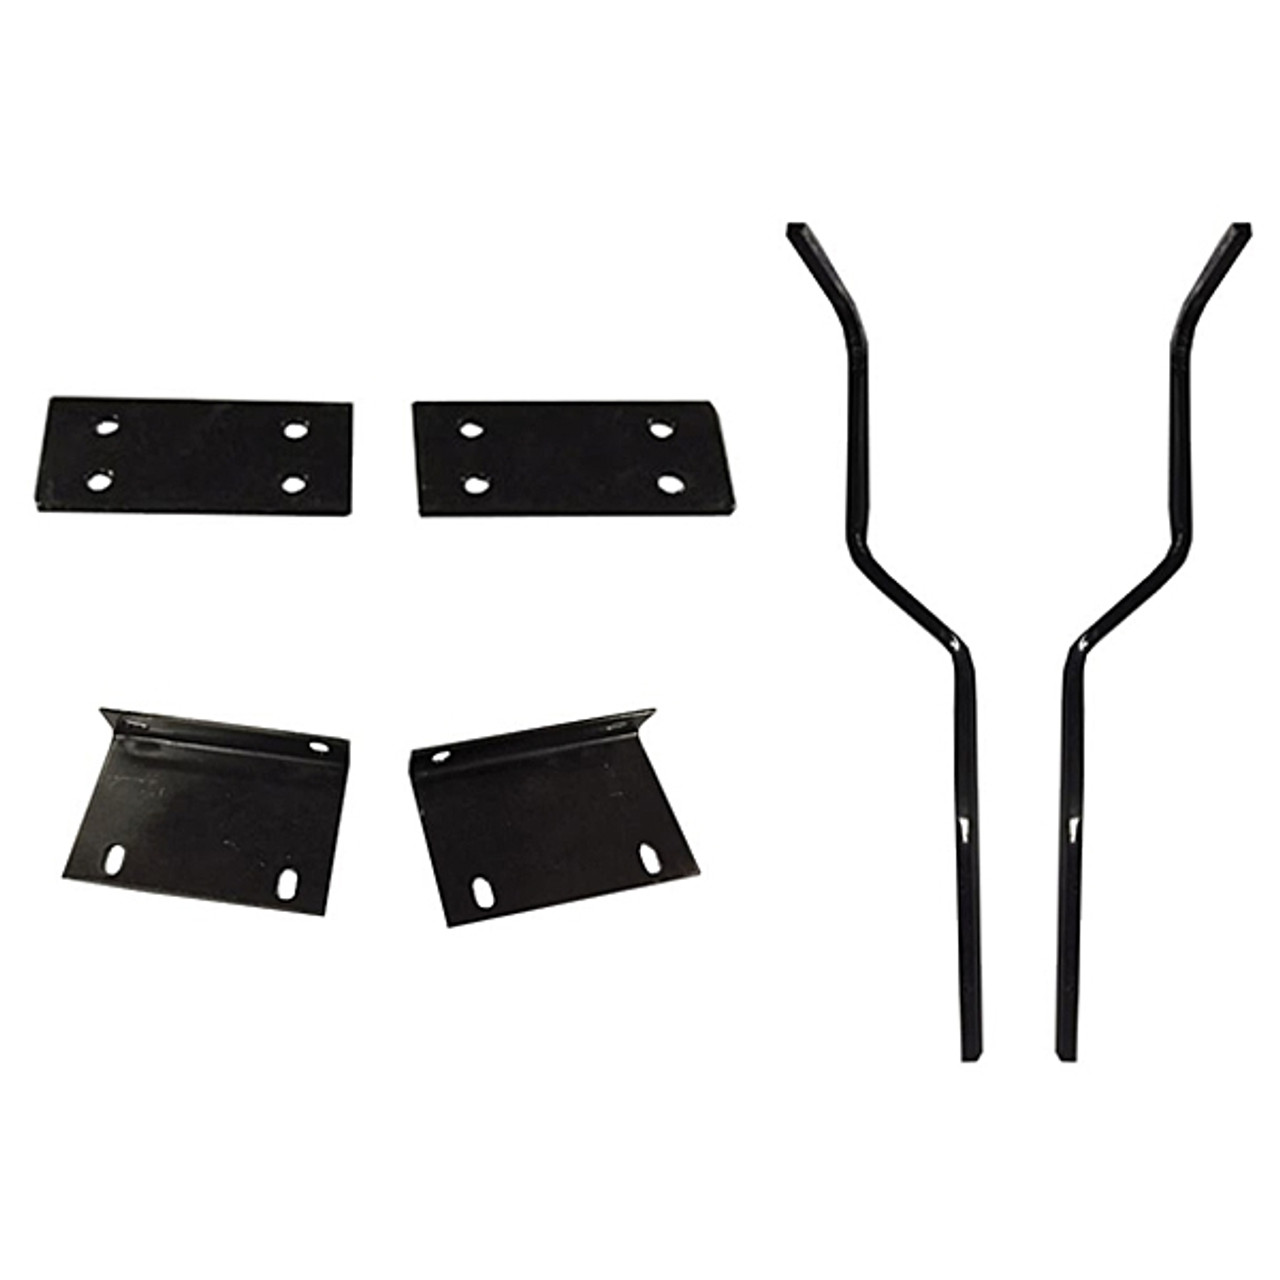 Madjax Mounting Brackets & Struts for Triple Track Extended Tops with Genesis 300 Seat Kit - Fits EZGO TXT/T48